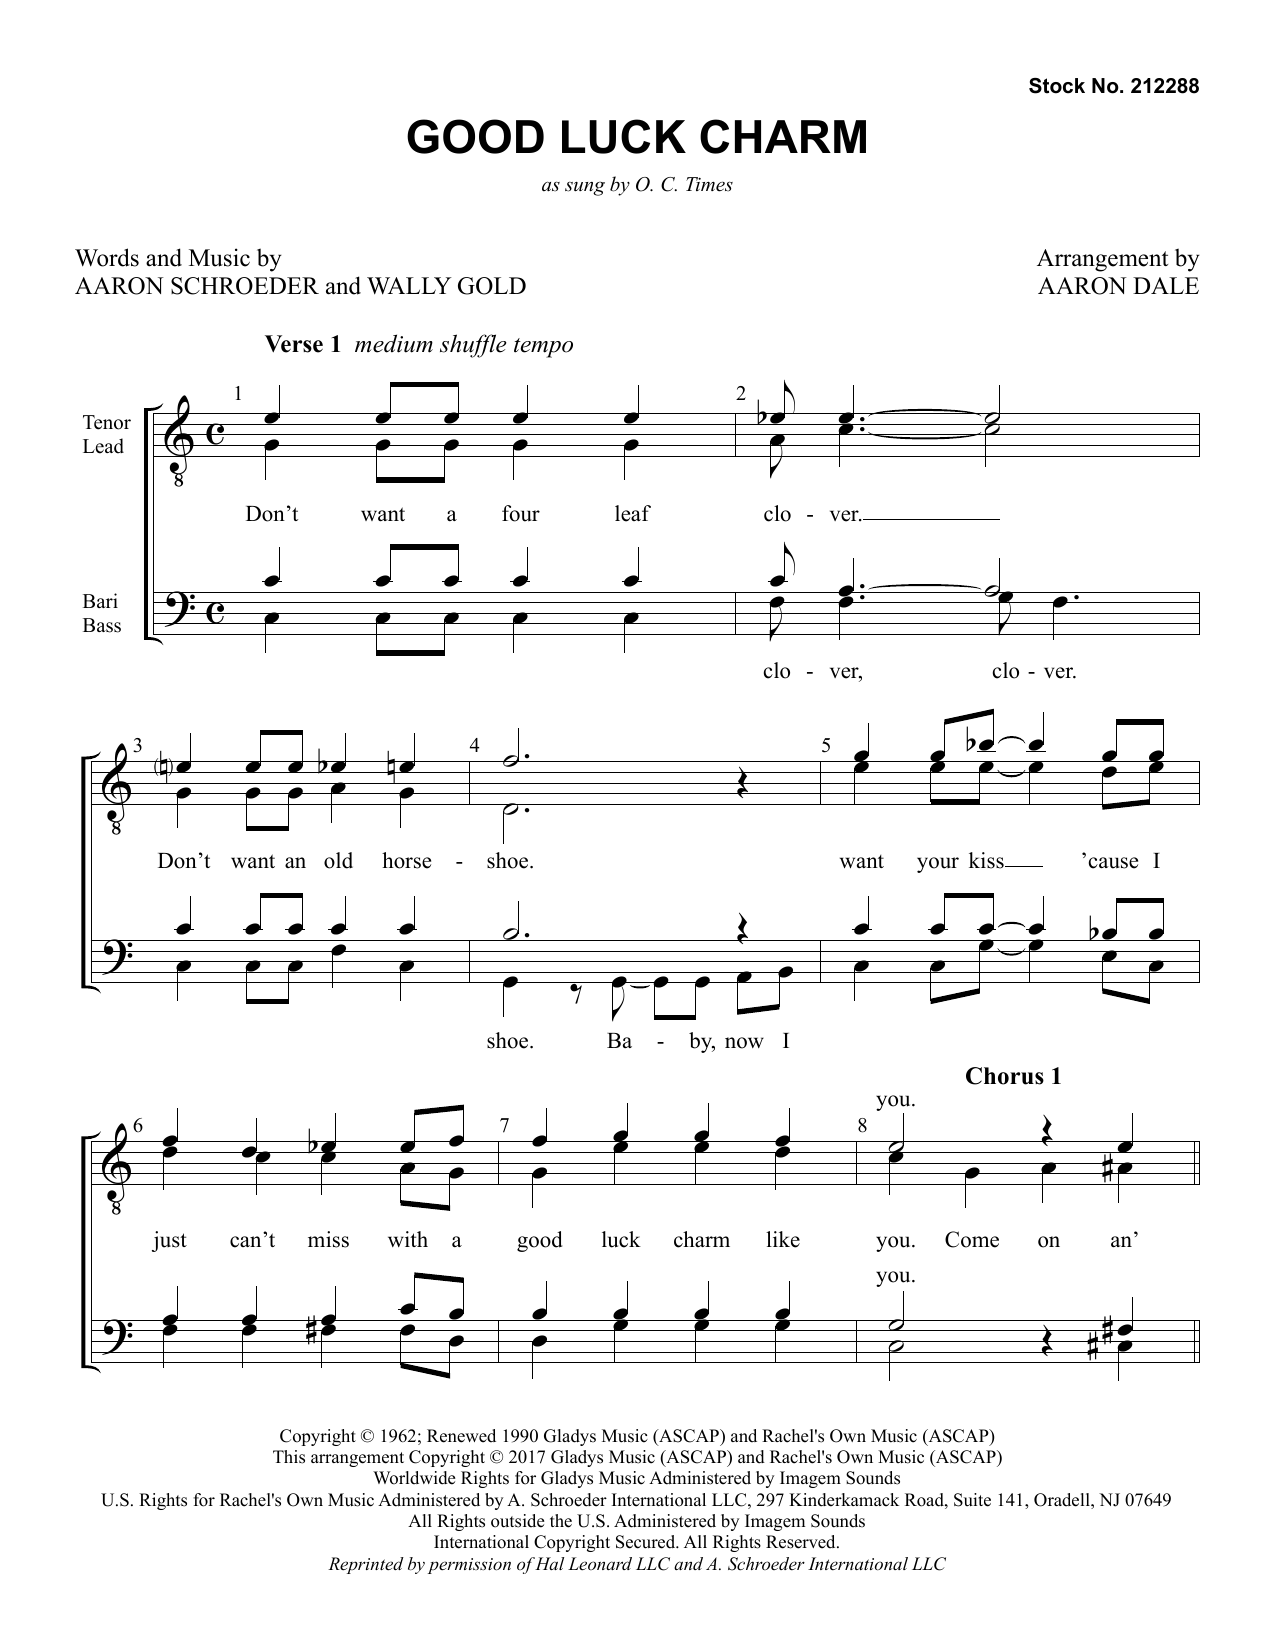 Good Luck Charm (arr. Aaron Dale) Partition Digitale